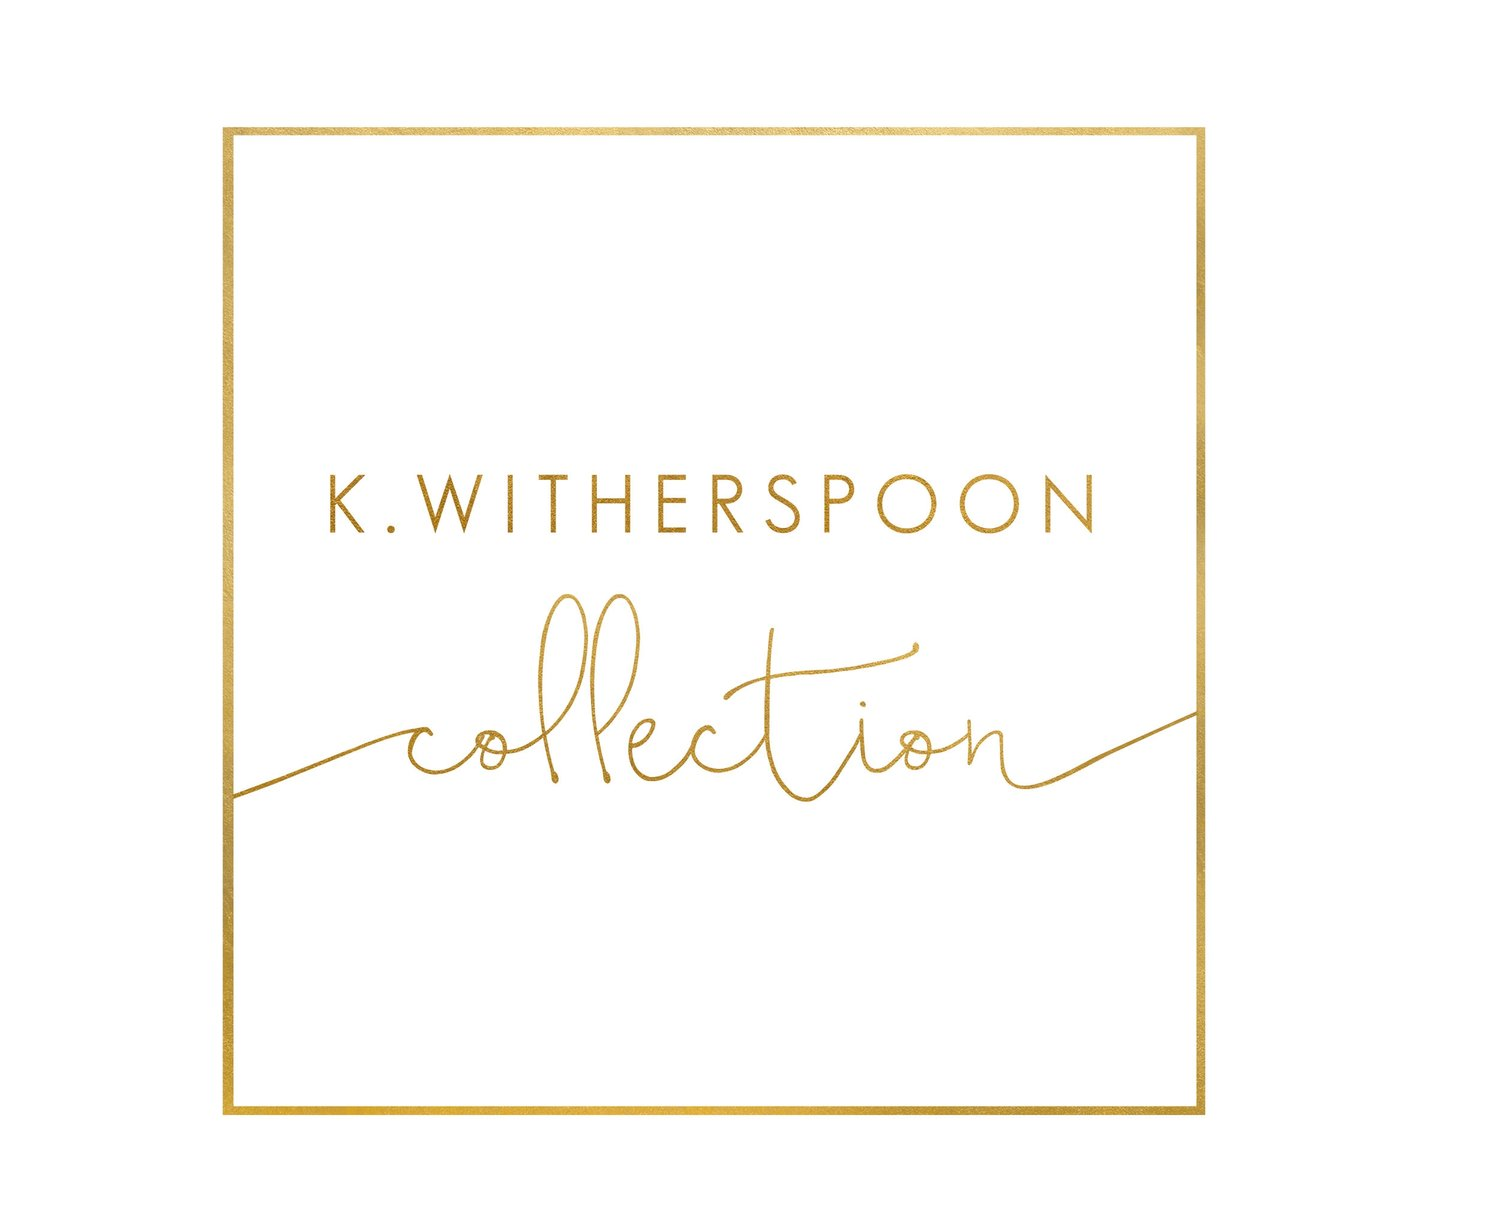 K WITHERSPOON COLLECTION